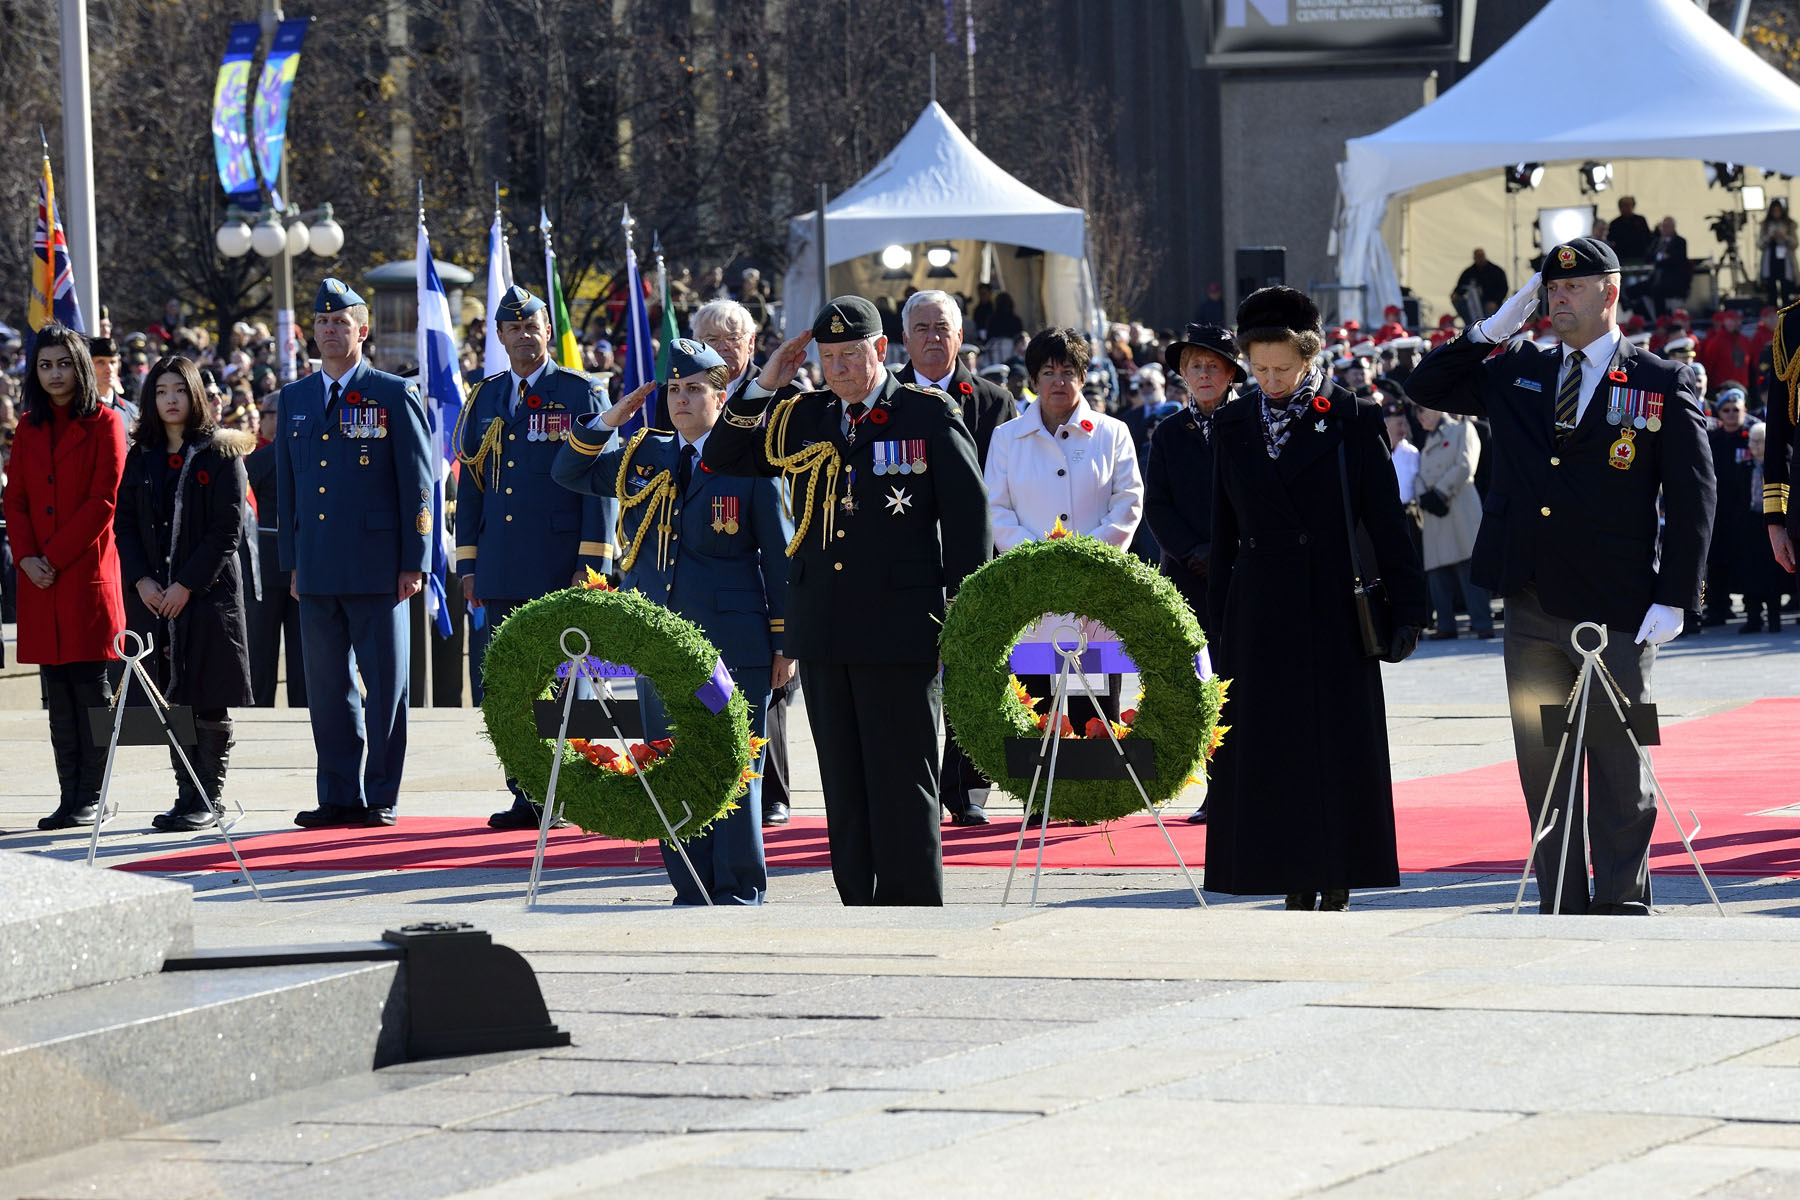 His Excellency and Her Royal Highness The Princess Royal laid wreaths of flowers.